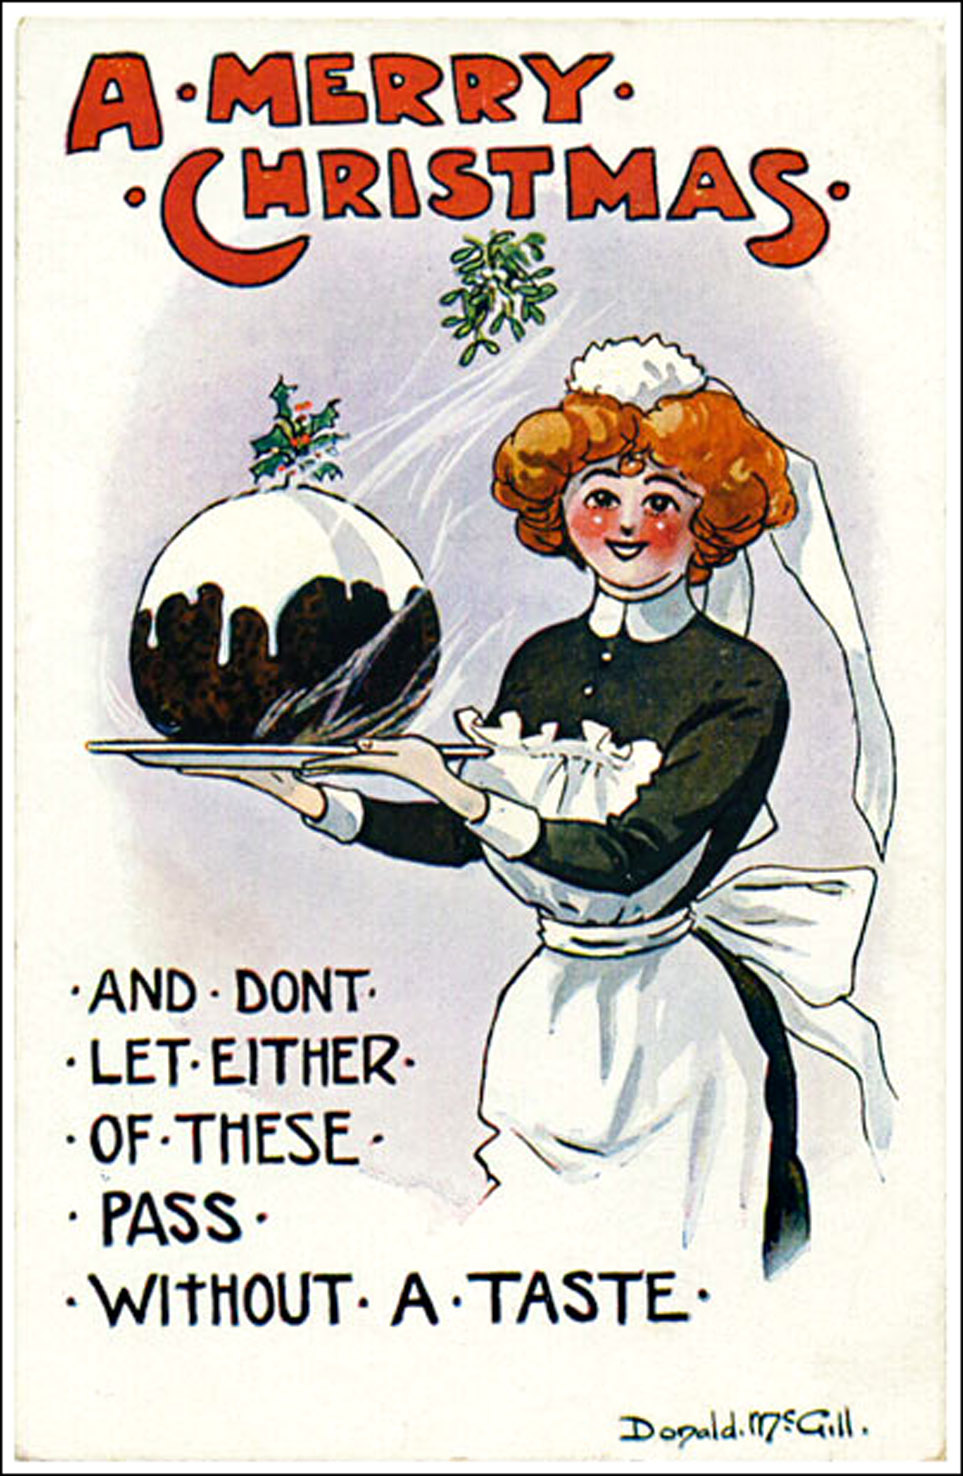 Don't let these pass without a taste - saucy Christmas card by Donald mcGill